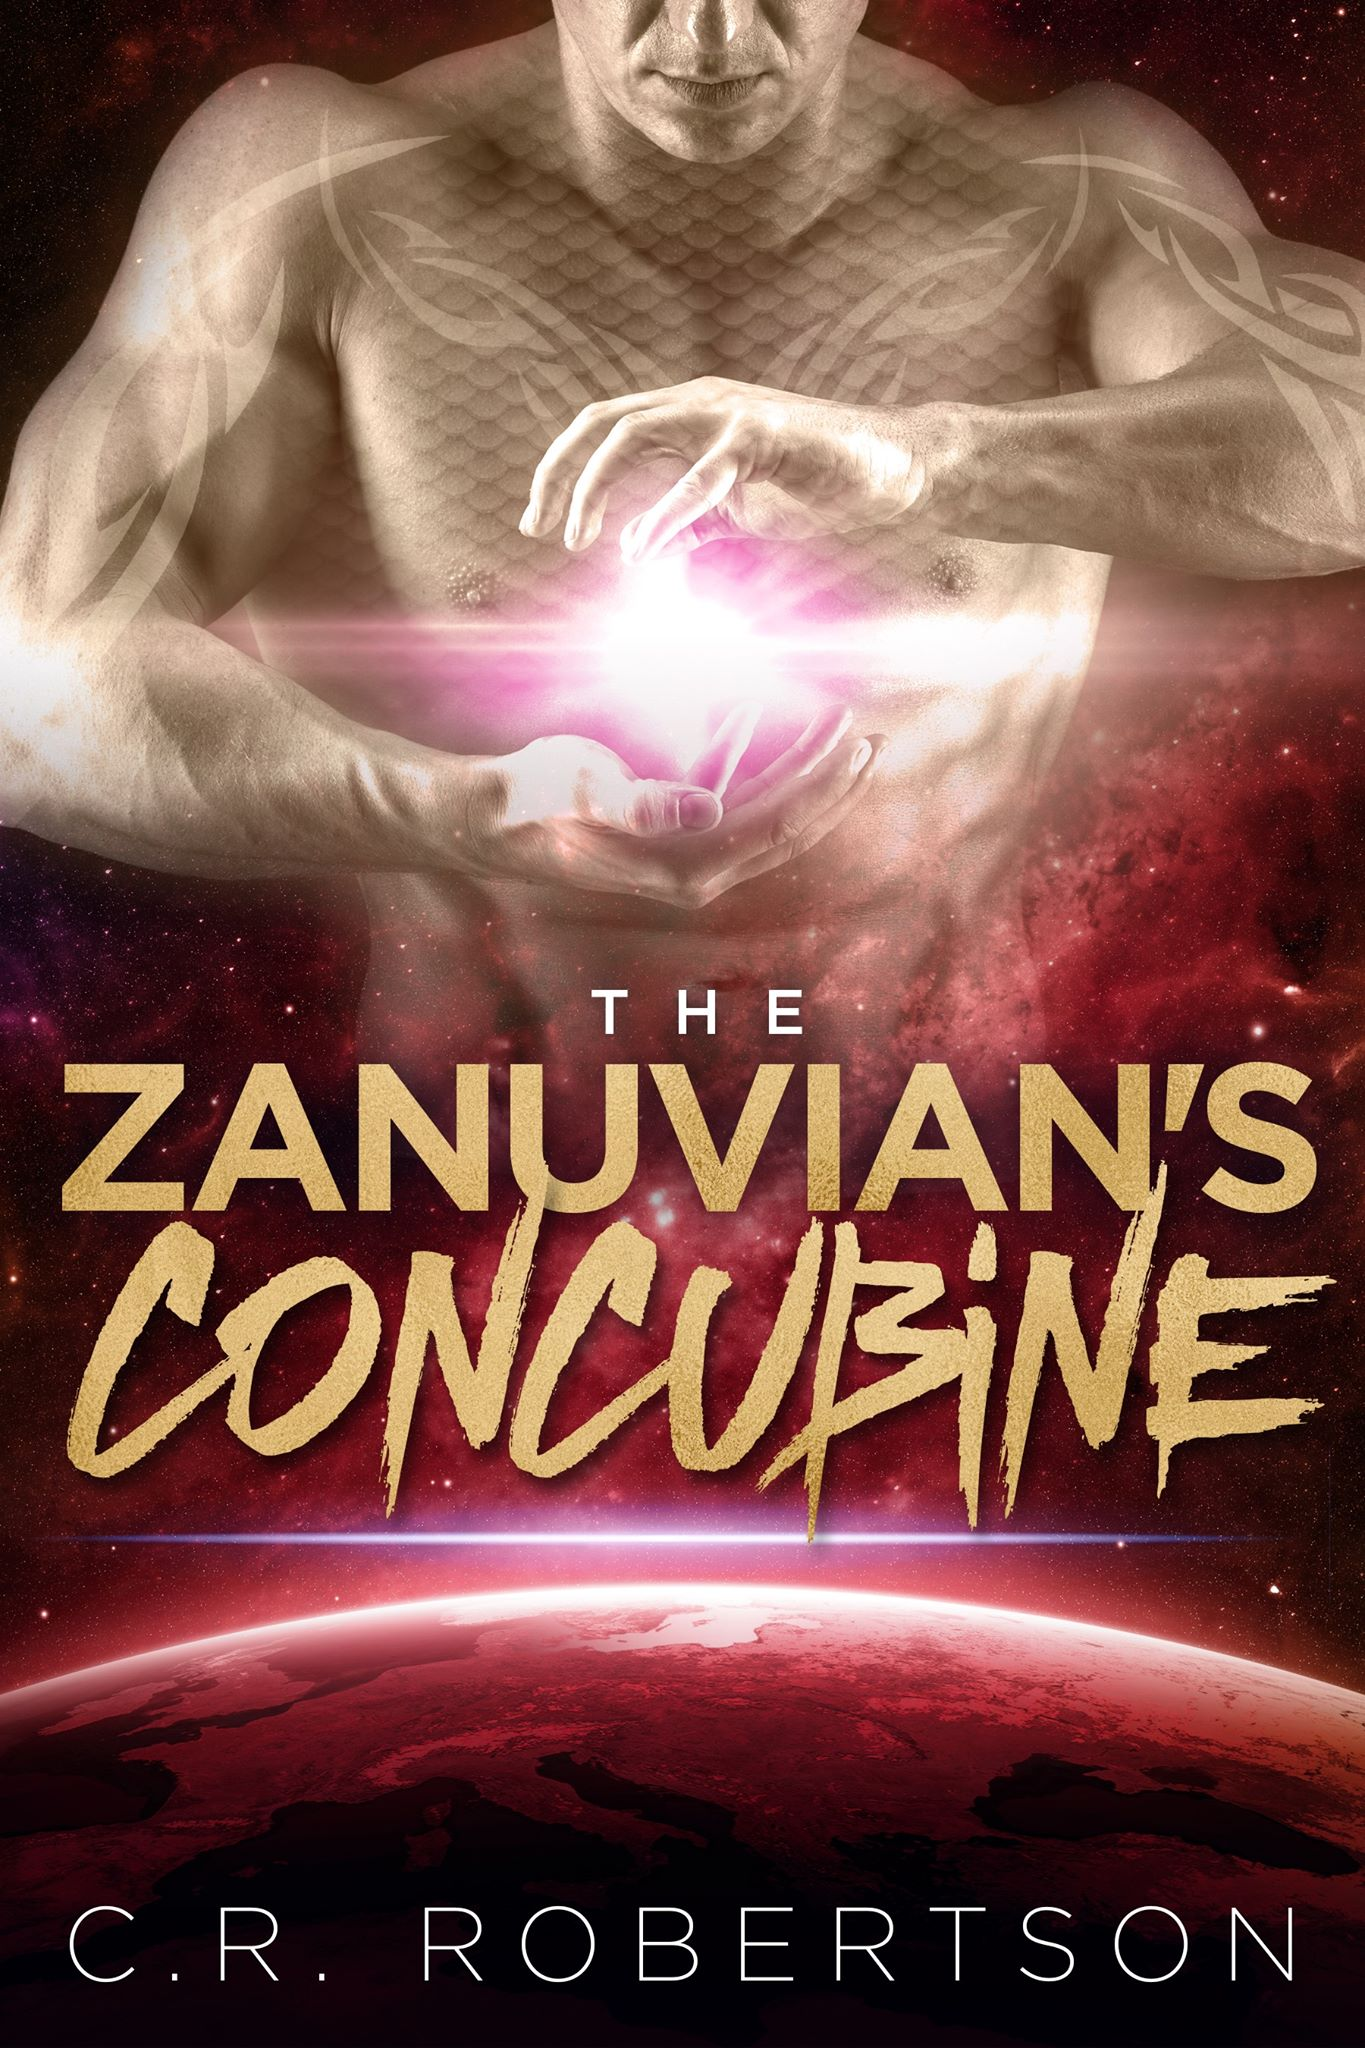 The Zanuvian's Concubine